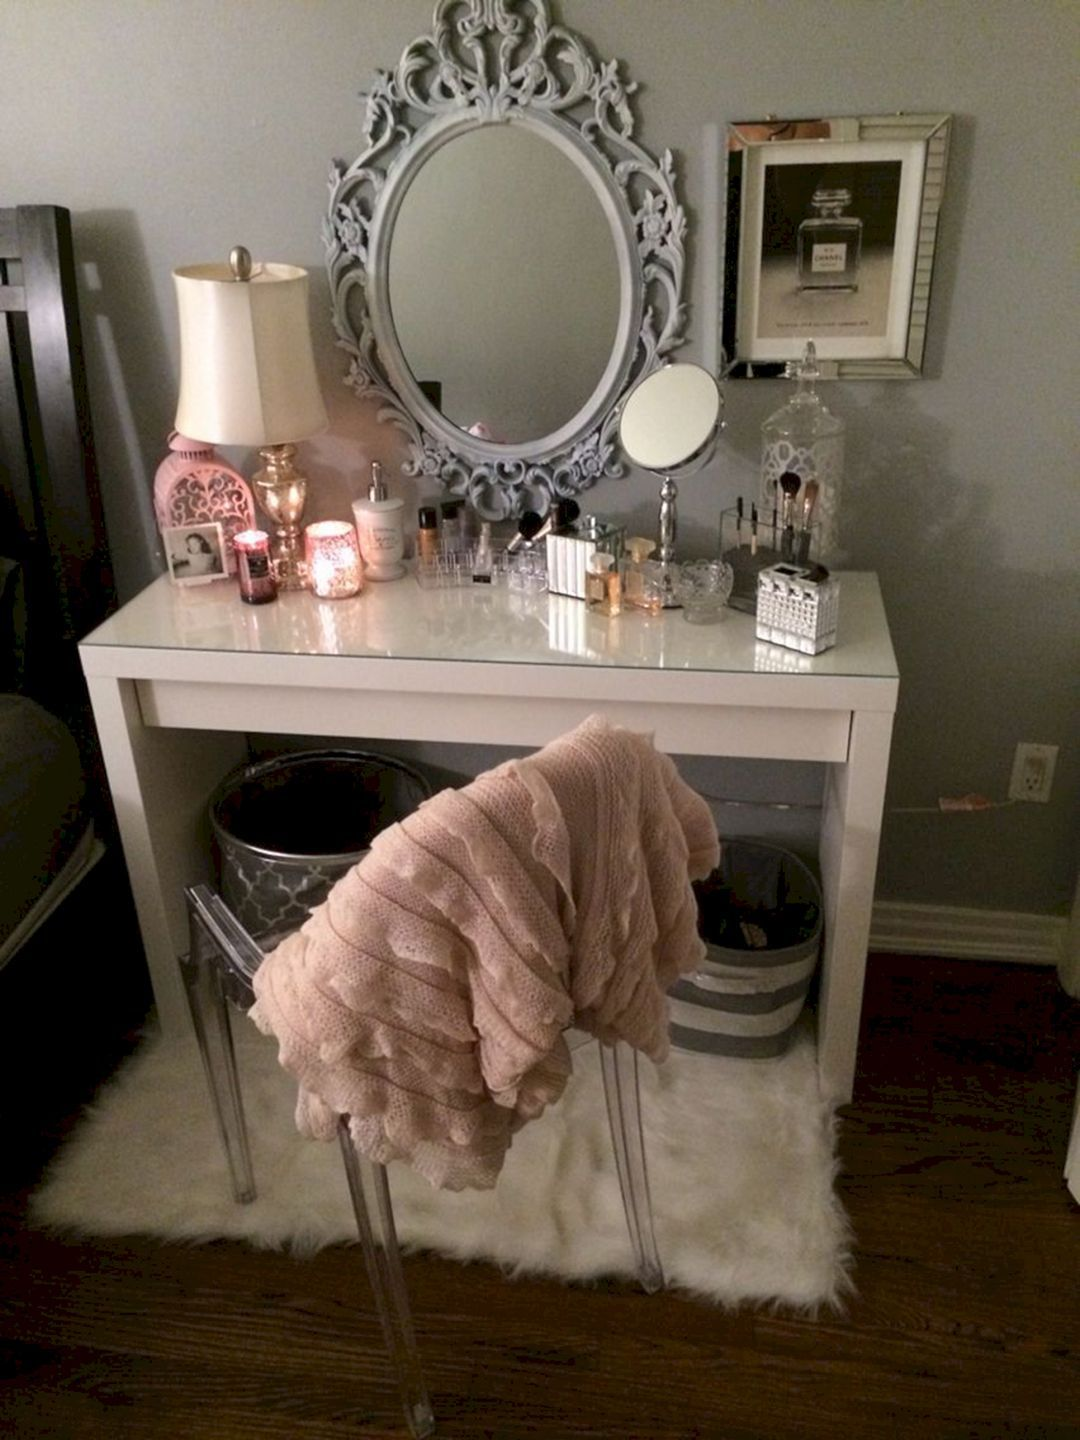 Nice 30+ Amazing DIY Makeup Vanity Design Ideas That Can Inspire You  Https://freshouz.com/30 Amazing Diy Makeup Vanity Design Ideas Can Inspire/  #home ...